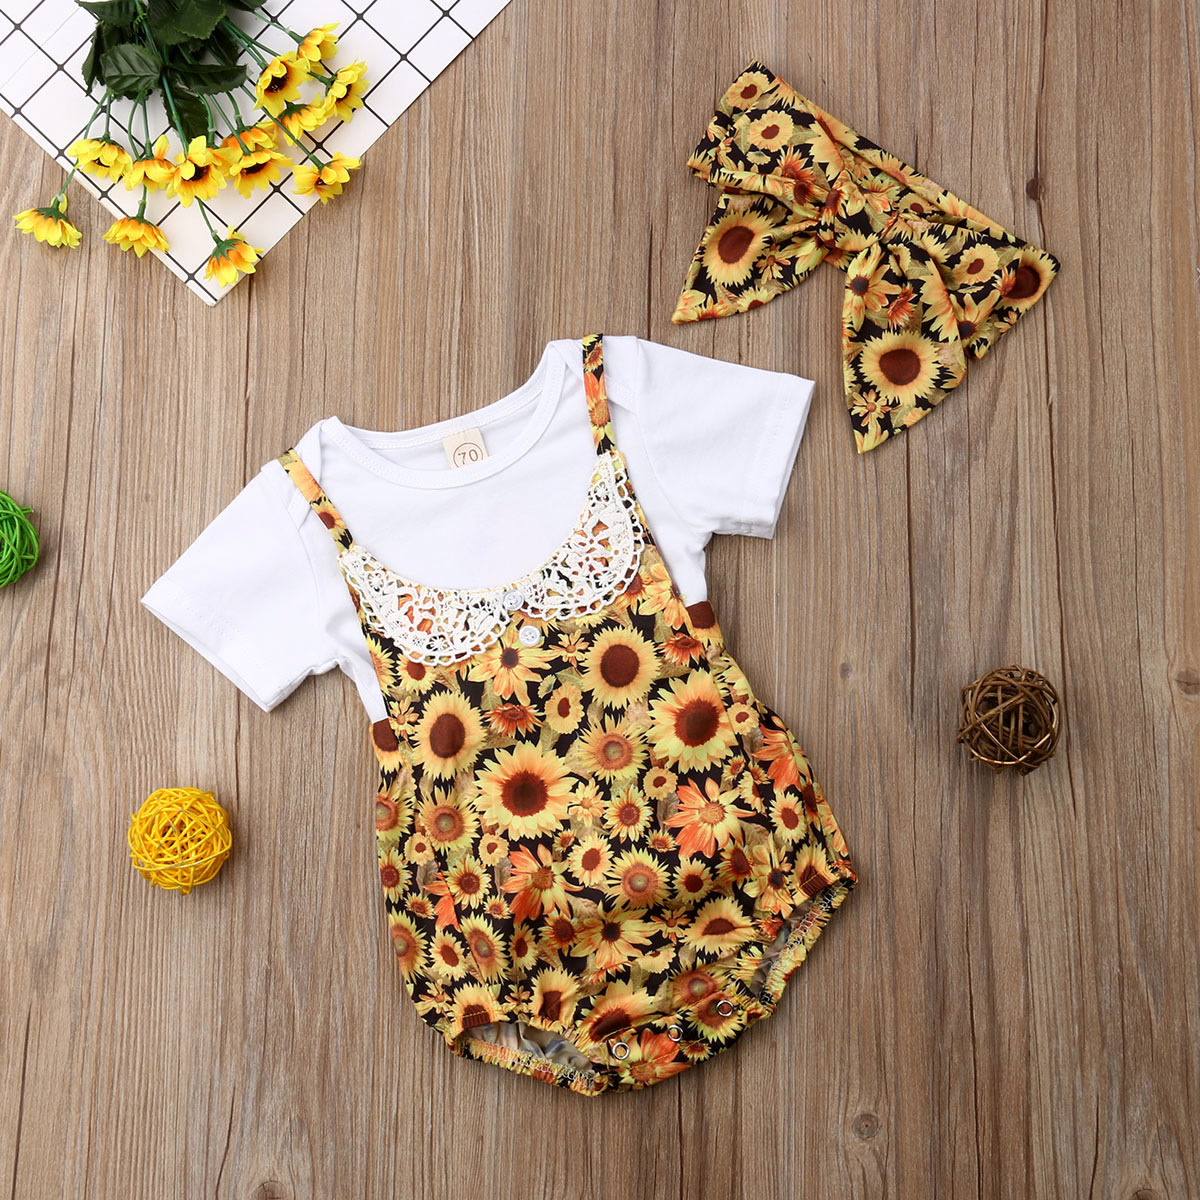 0-2Years,SO-buts Summer Infant Baby Girls Half Sleeve Floral Print Clothes Tops Jumpsuit Romper